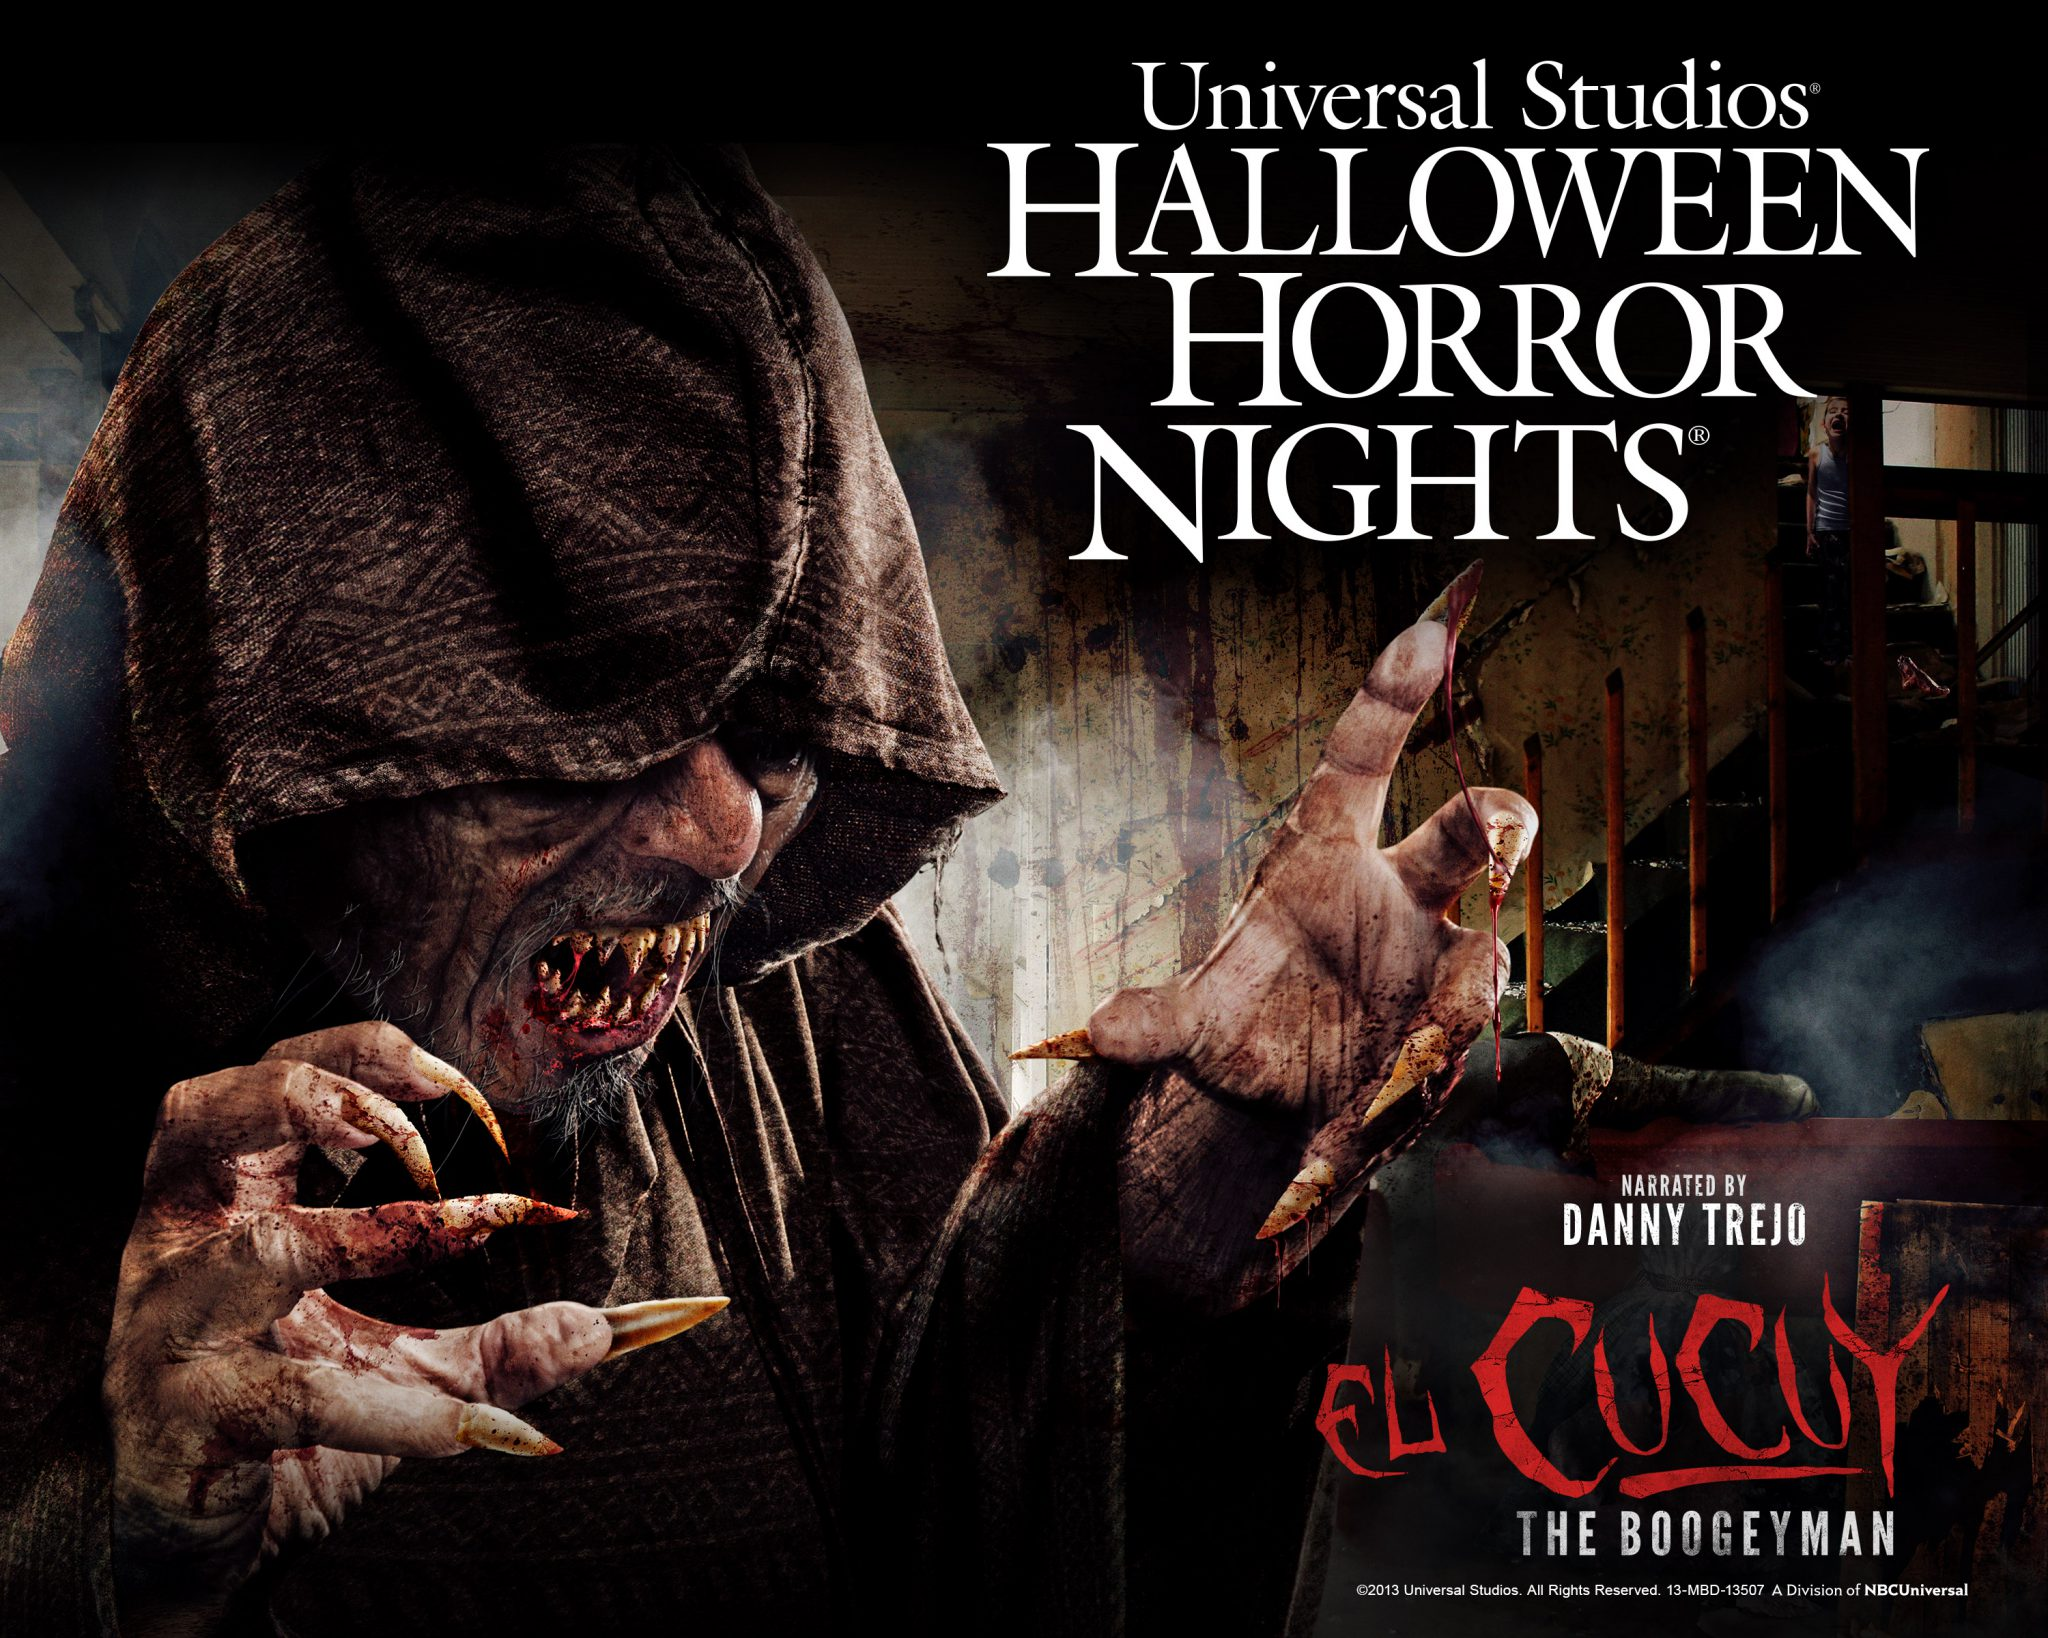 el cucuy the boogeyman announced for halloween horror - Universal Halloween Night